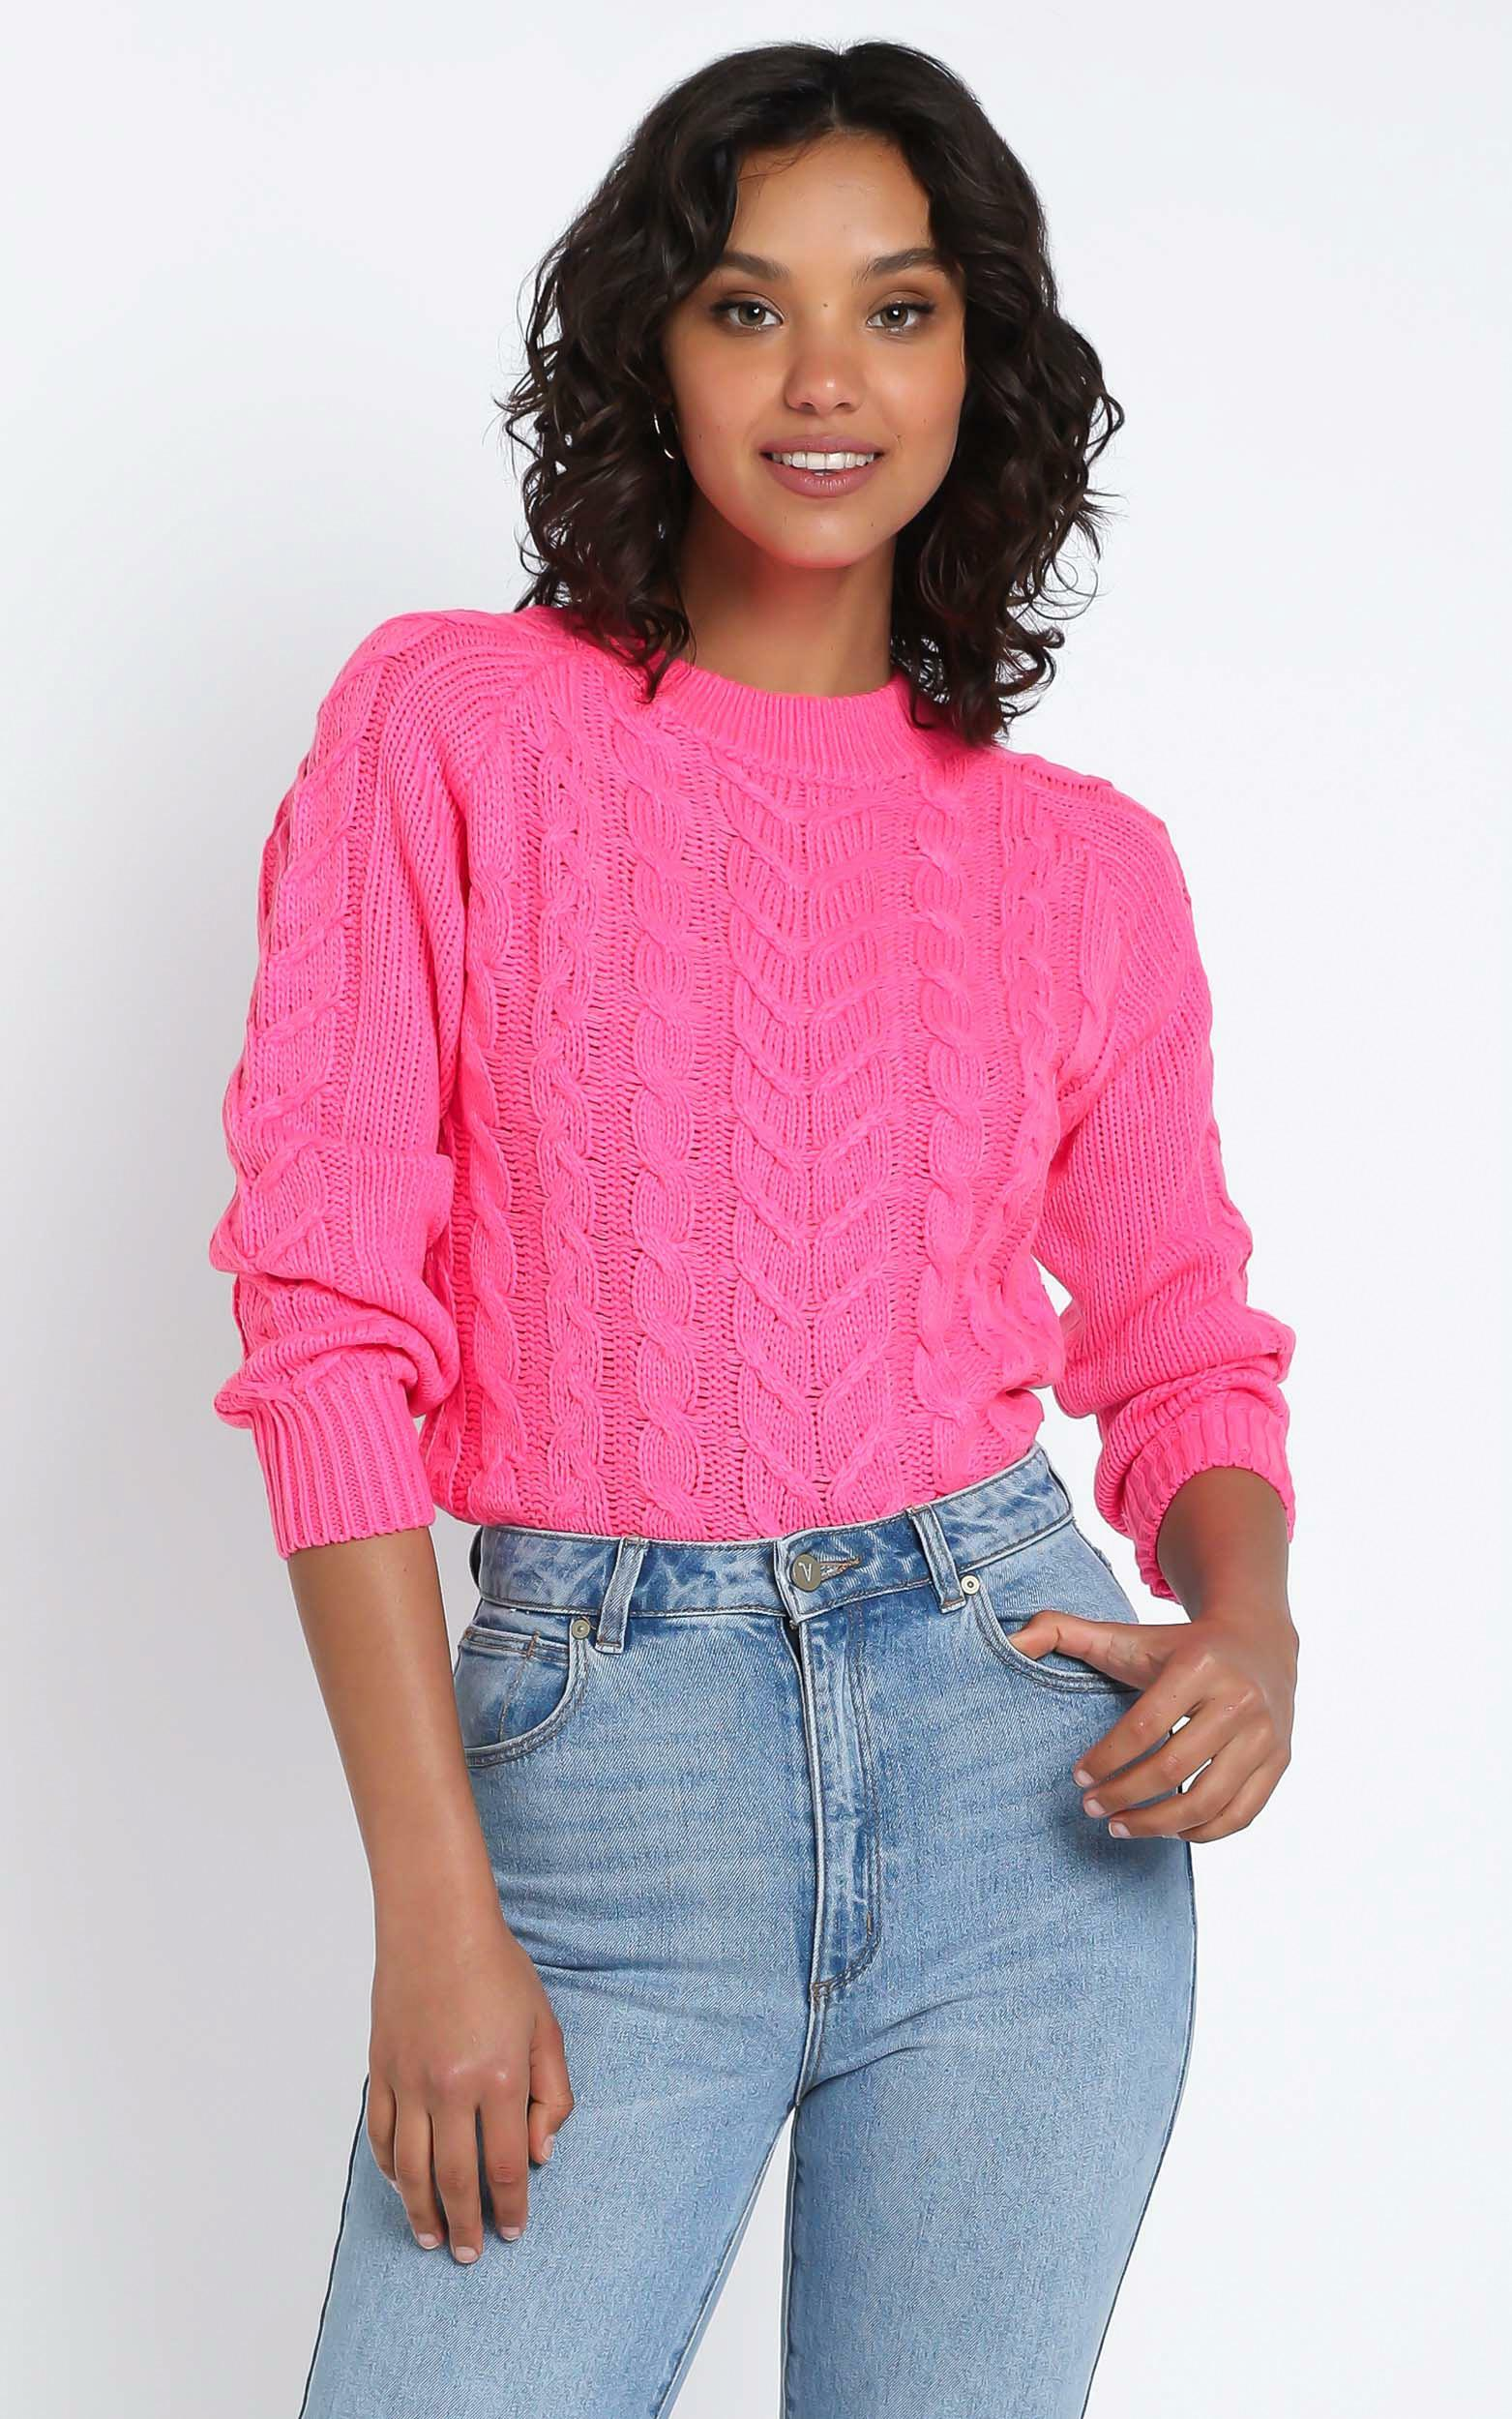 Duffy Knit Jumper in Hot Pink - 12 (L), PNK11, hi-res image number null